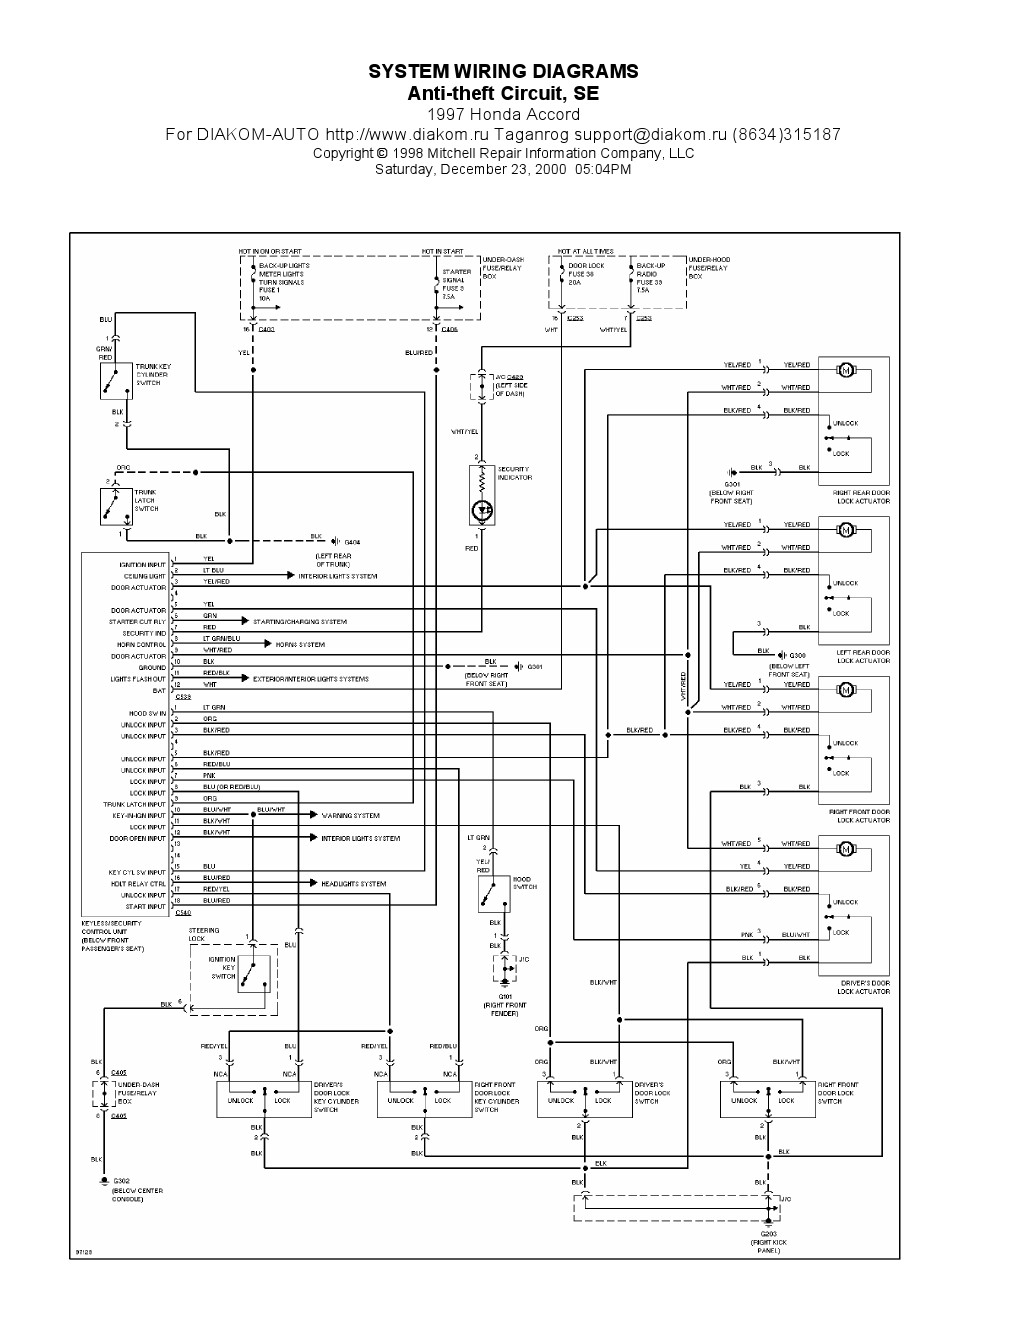 1997 honda accord wiring diagram pdf sample wiring diagram sample rh faceitsalon com honda wiring diagrams for part 35850-has honda wiring diagrams automotive